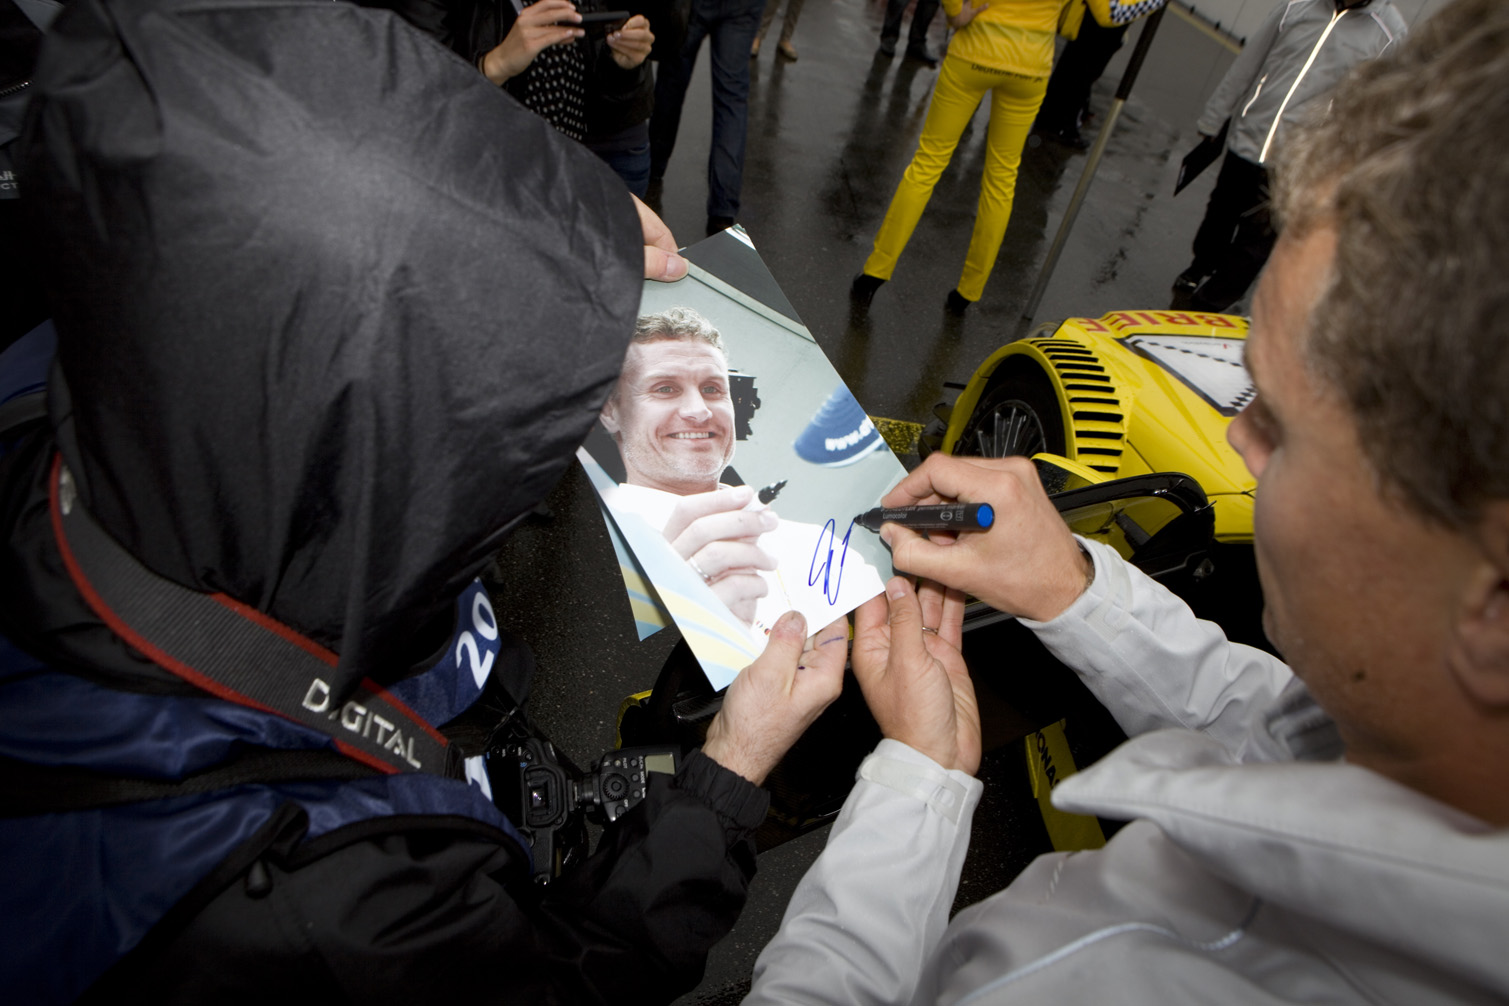 David Coulthard signs pictures for fans in Germany